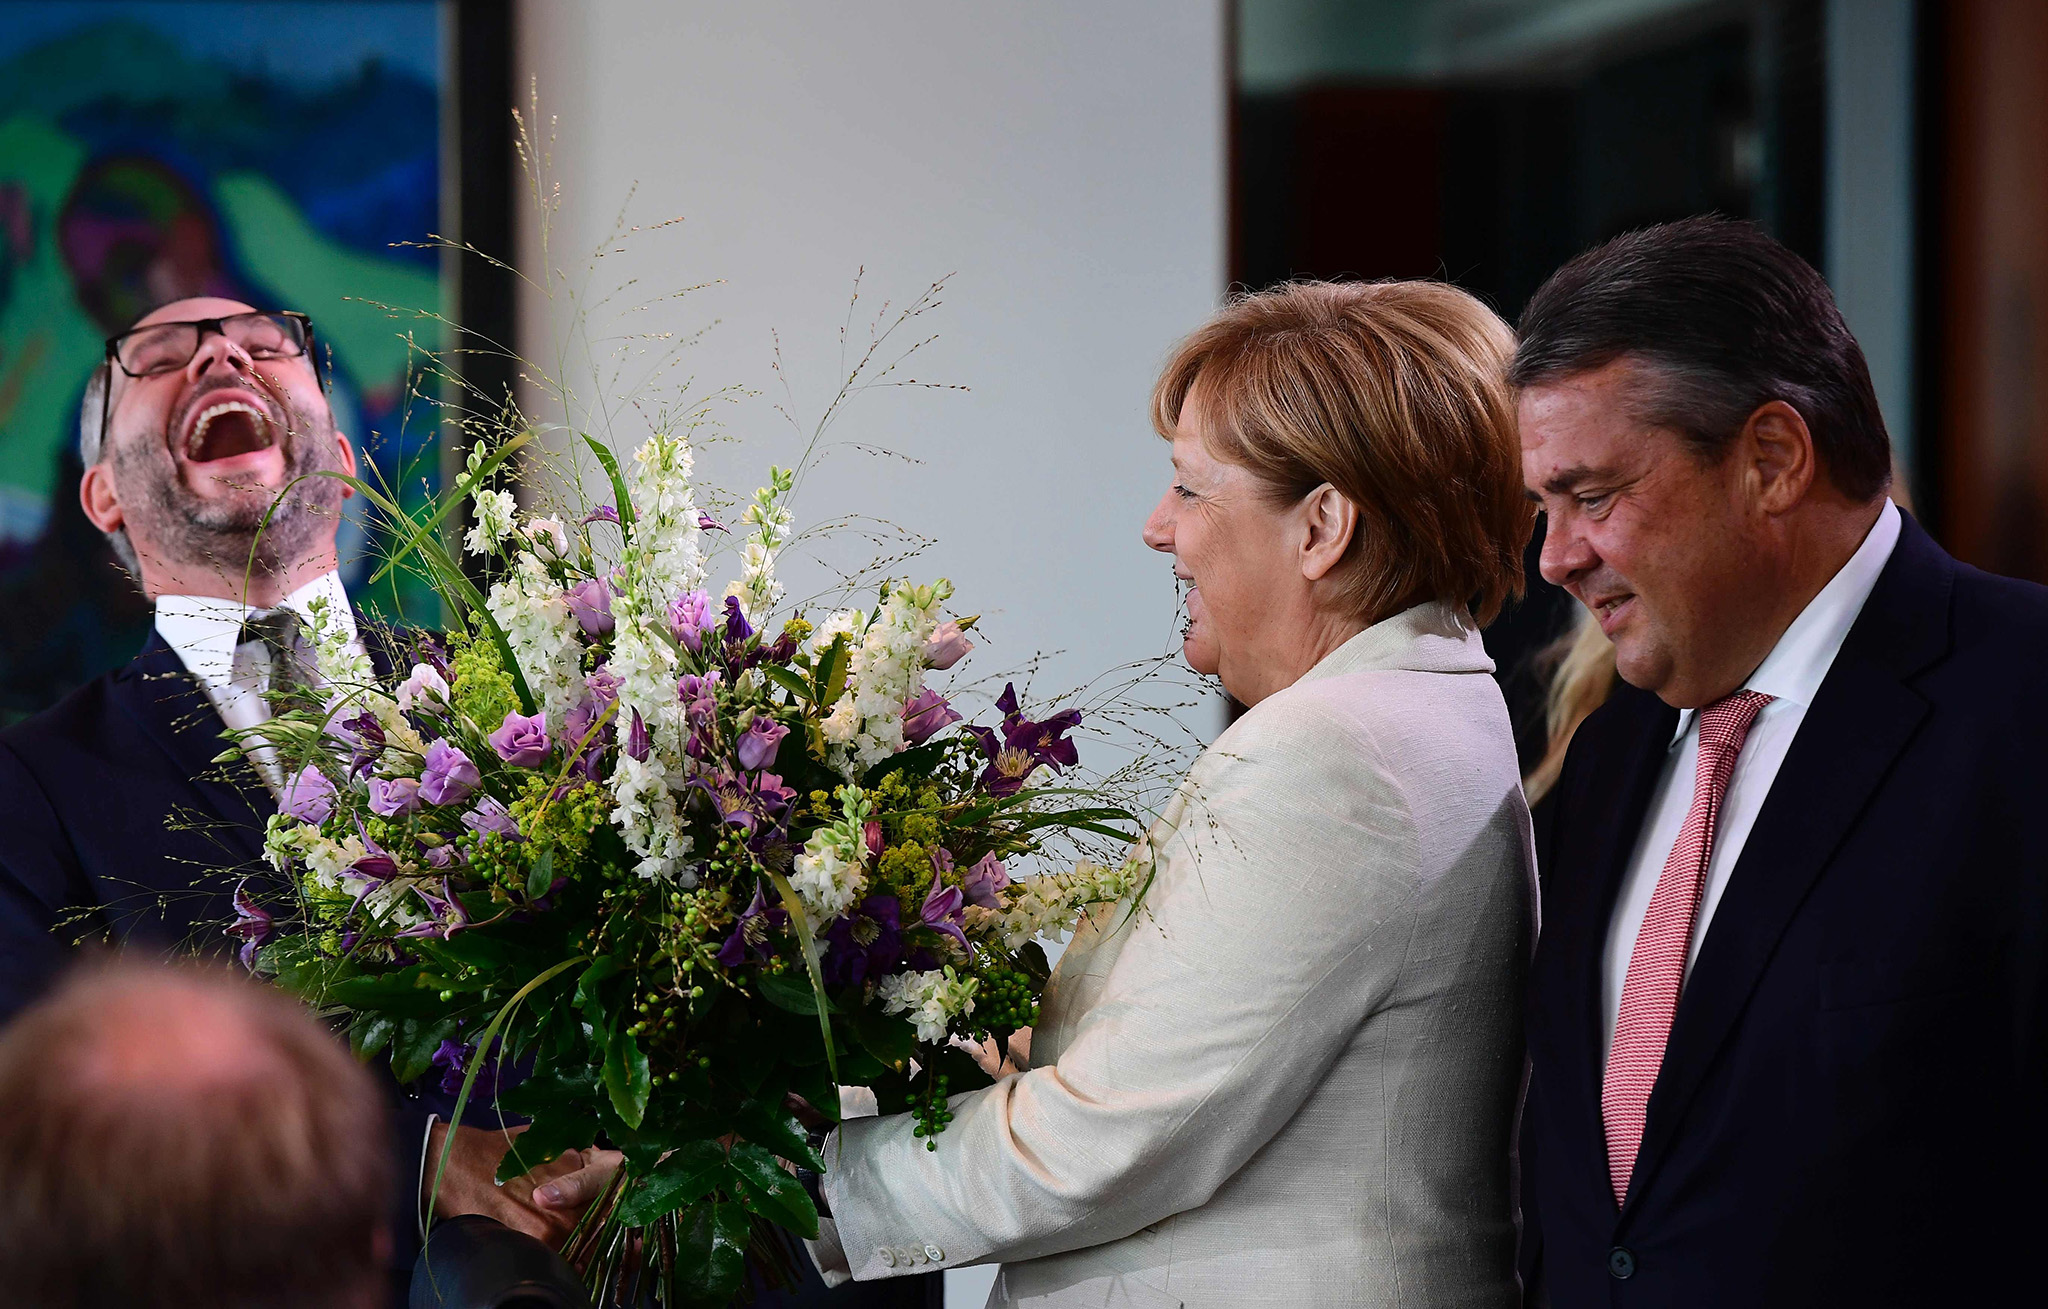 German Chancellor Angela Merkel and German Vice Chancellor, Economy and Energy Minister Sigmar Gabriel (R) hand over birthday flowers to State Minister at the Foreign Ministry Michael Roth (L) before the weekly cabinet meeting in Berlin on August 24, 2016. / AFP PHOTO / TOBIAS SCHWARZTOBIAS SCHWARZ/AFP/Getty Images